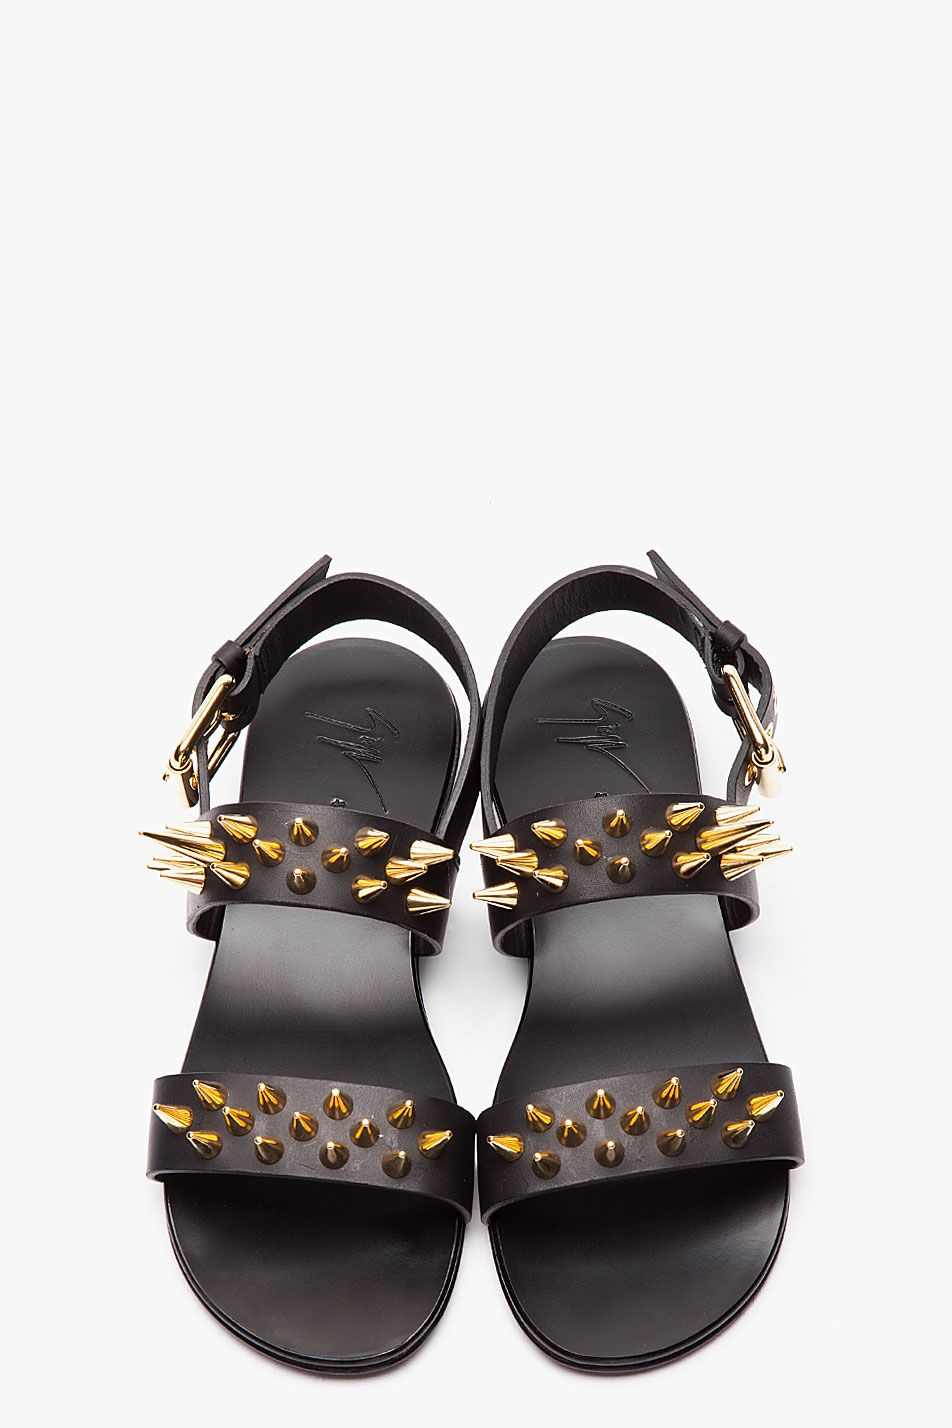 1e5175063ca84 GIUSEPPE ZANOTTI for the brave and ultimately secure man of fashion.  Designer sandals for Men